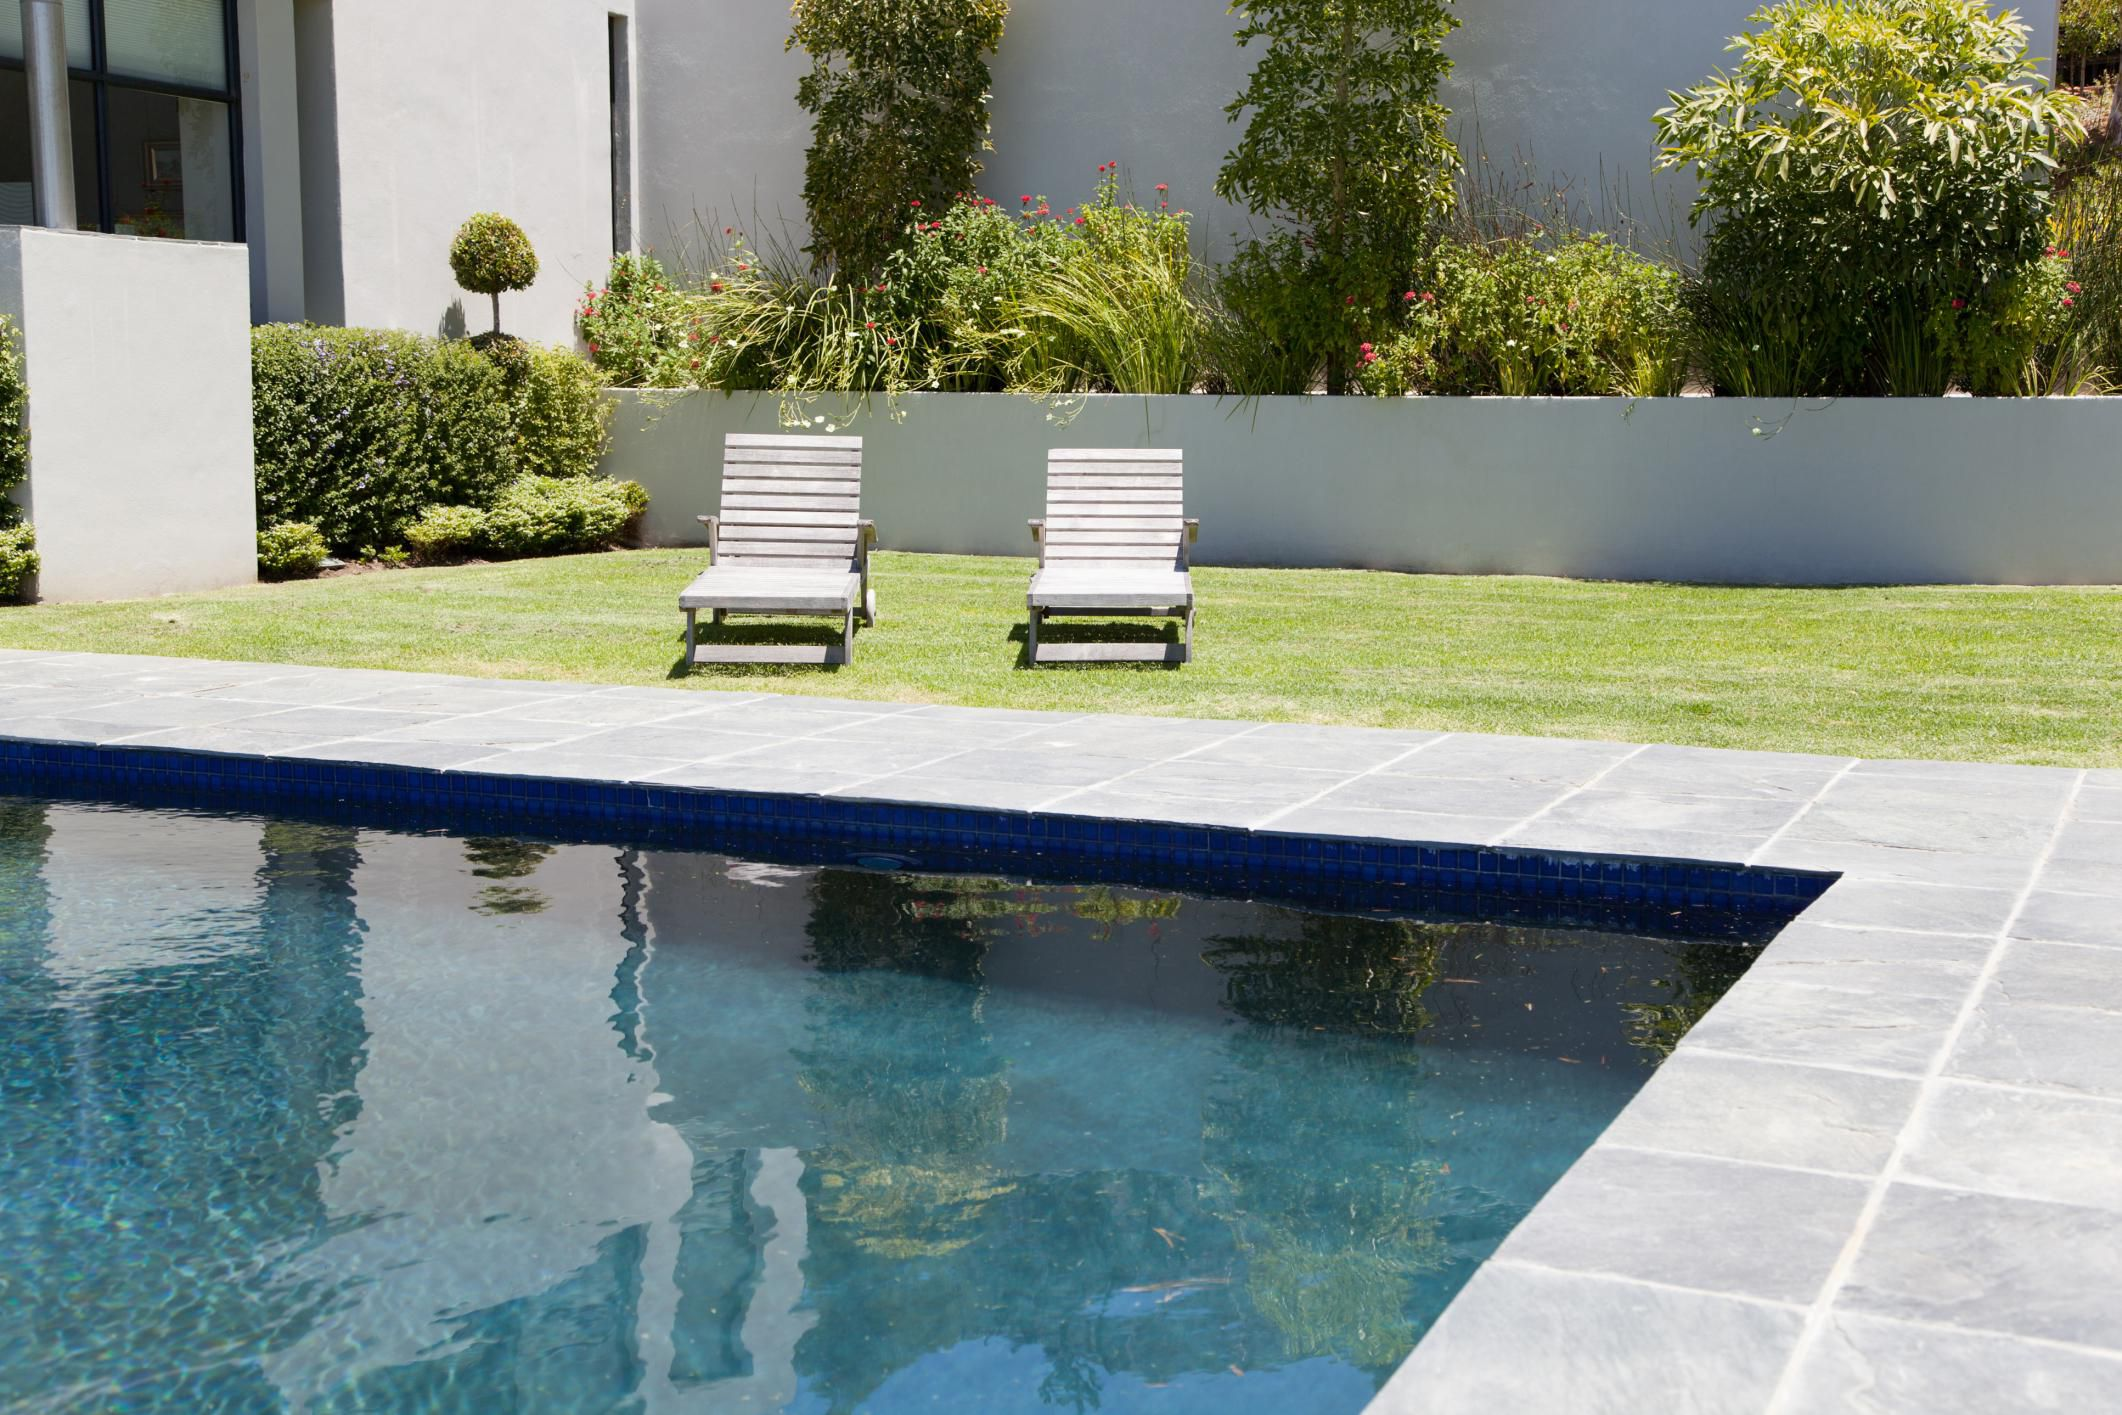 How To Stop A Swimming Pool Leak